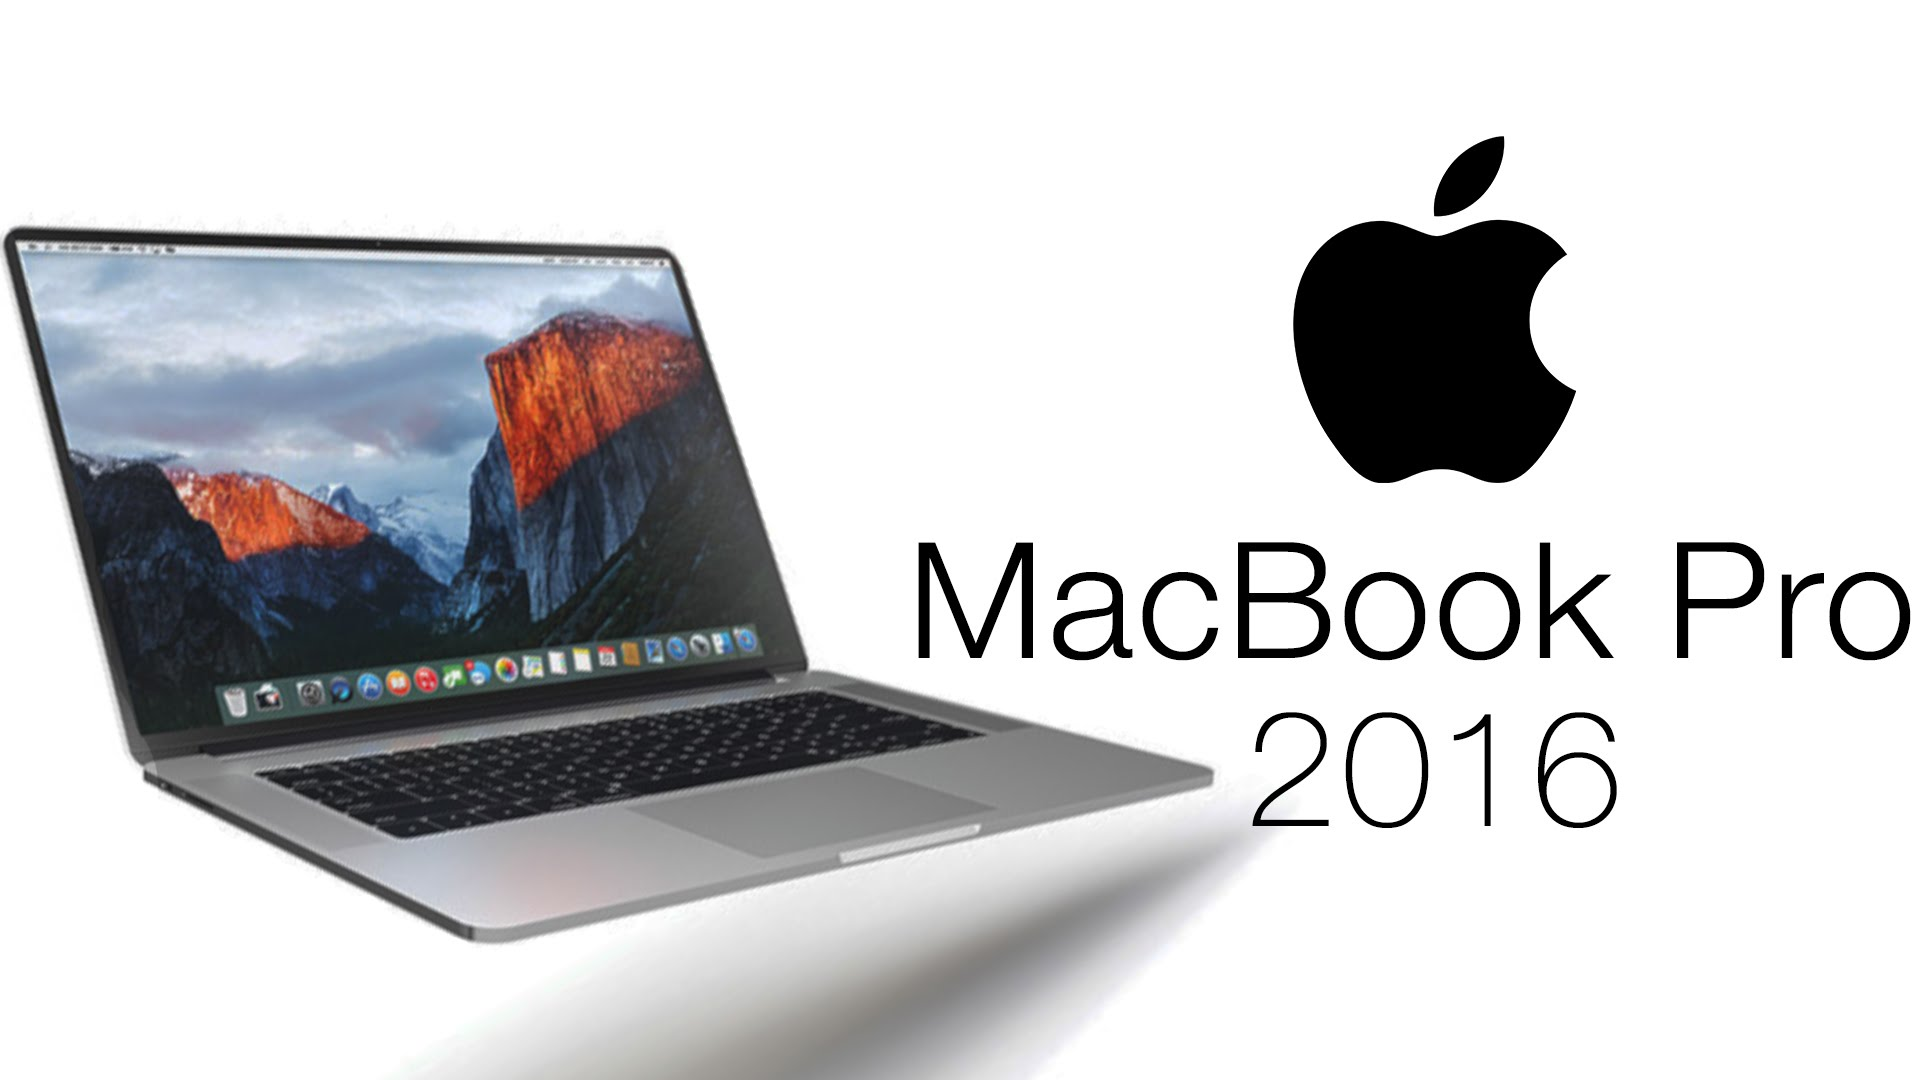 all-new-macbook-pro-to-arrive-this-month-on-27th-oct-1